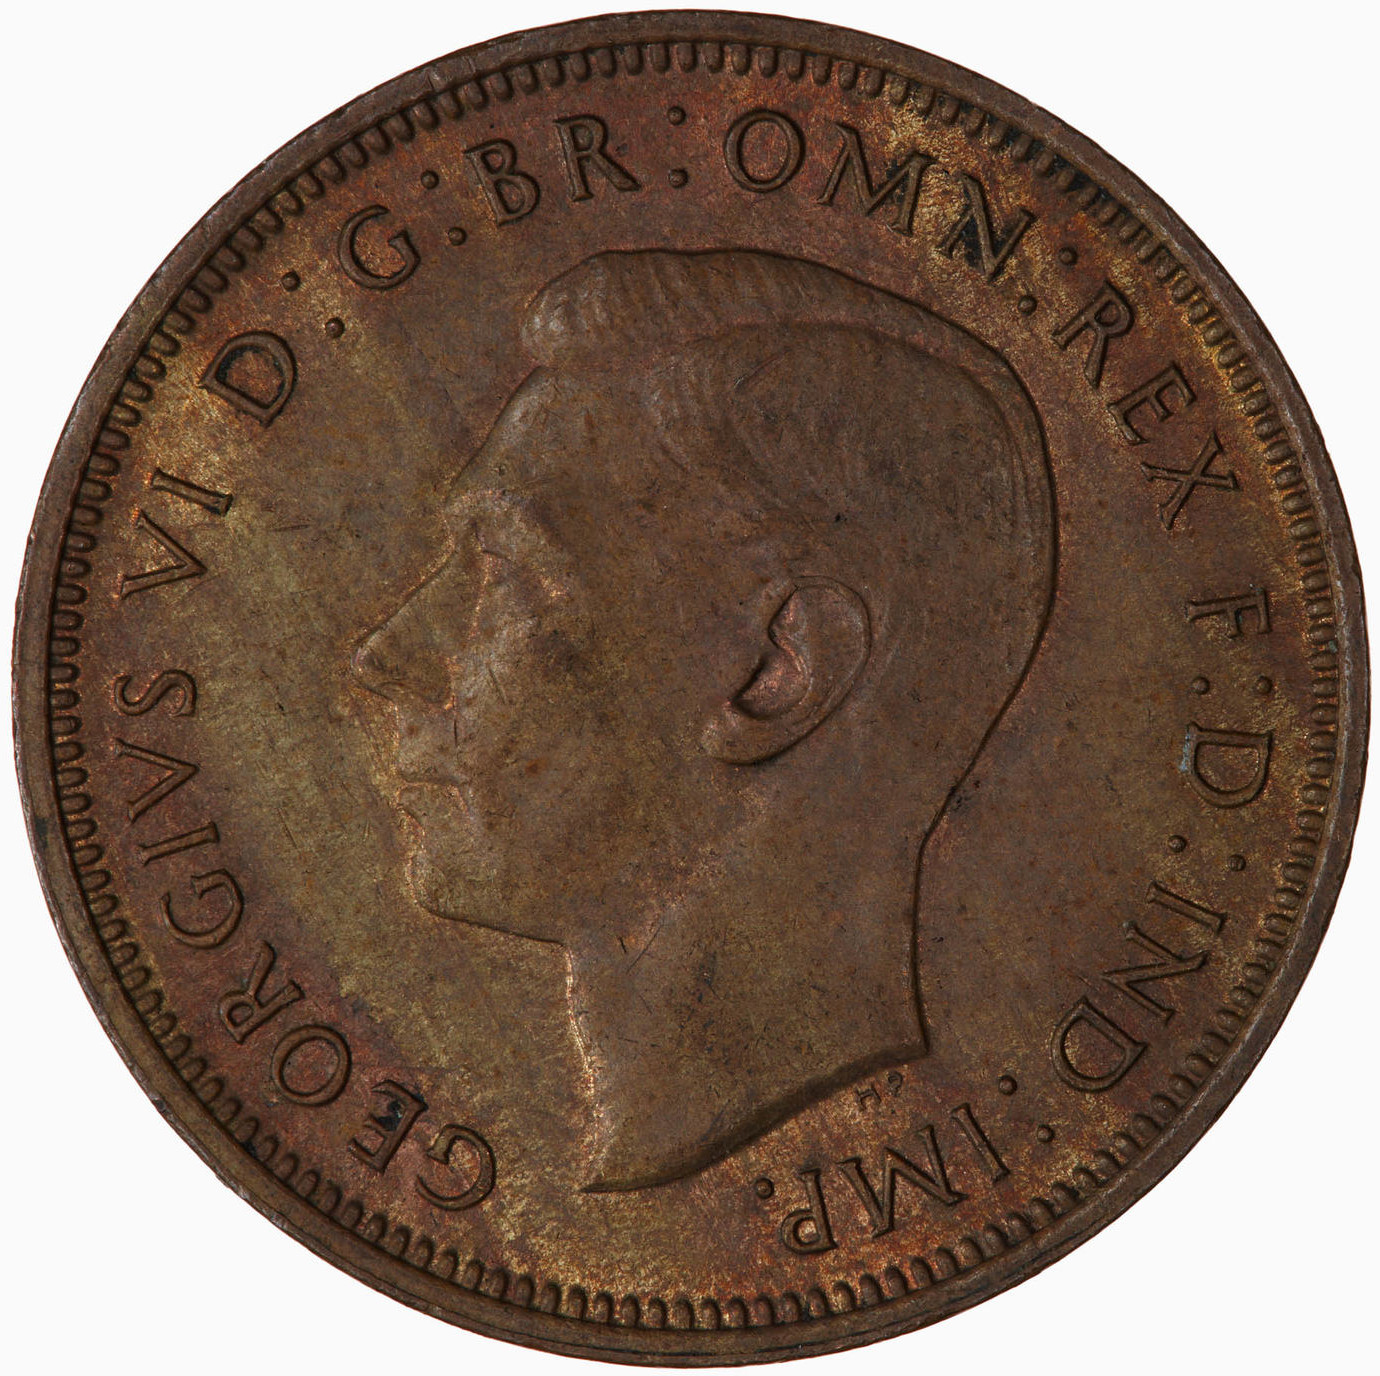 Halfpenny 1944: Photo Coin - Halfpenny, George VI, Great Britain, 1944